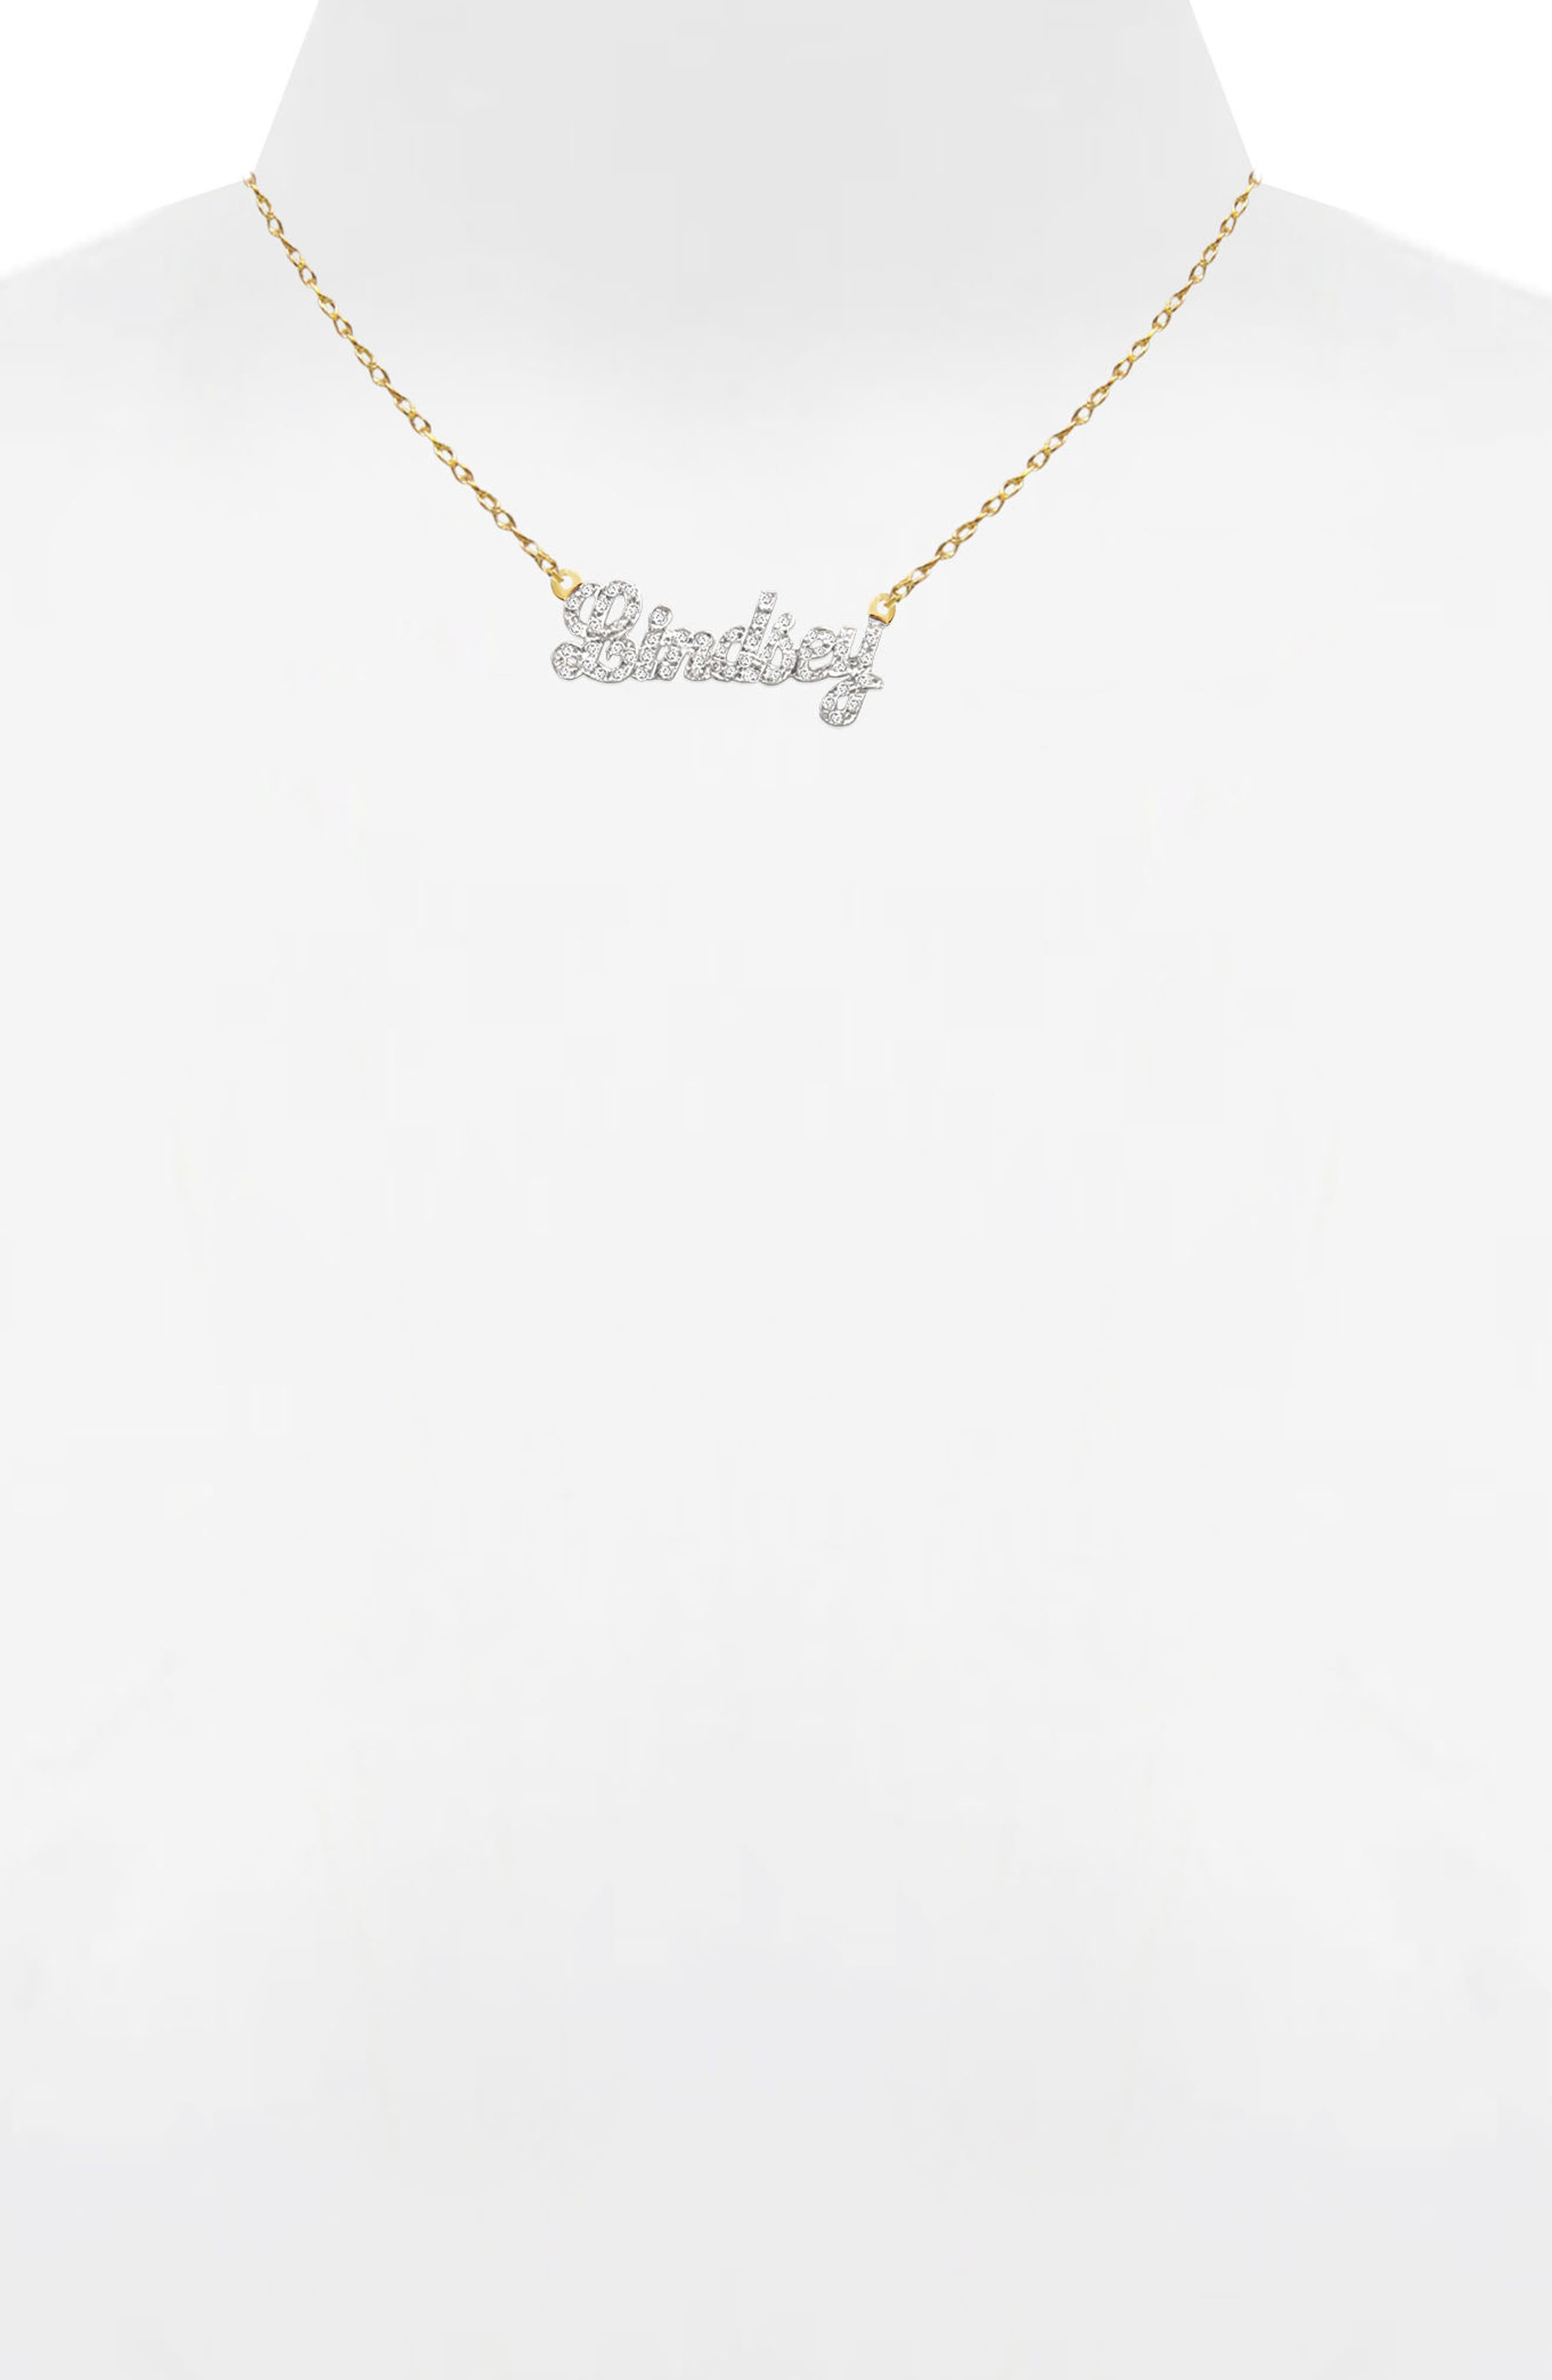 Jane Basch Personalized Nameplate Diamond Pendant Necklace,                             Alternate thumbnail 2, color,                             14K YELLOW GOLD